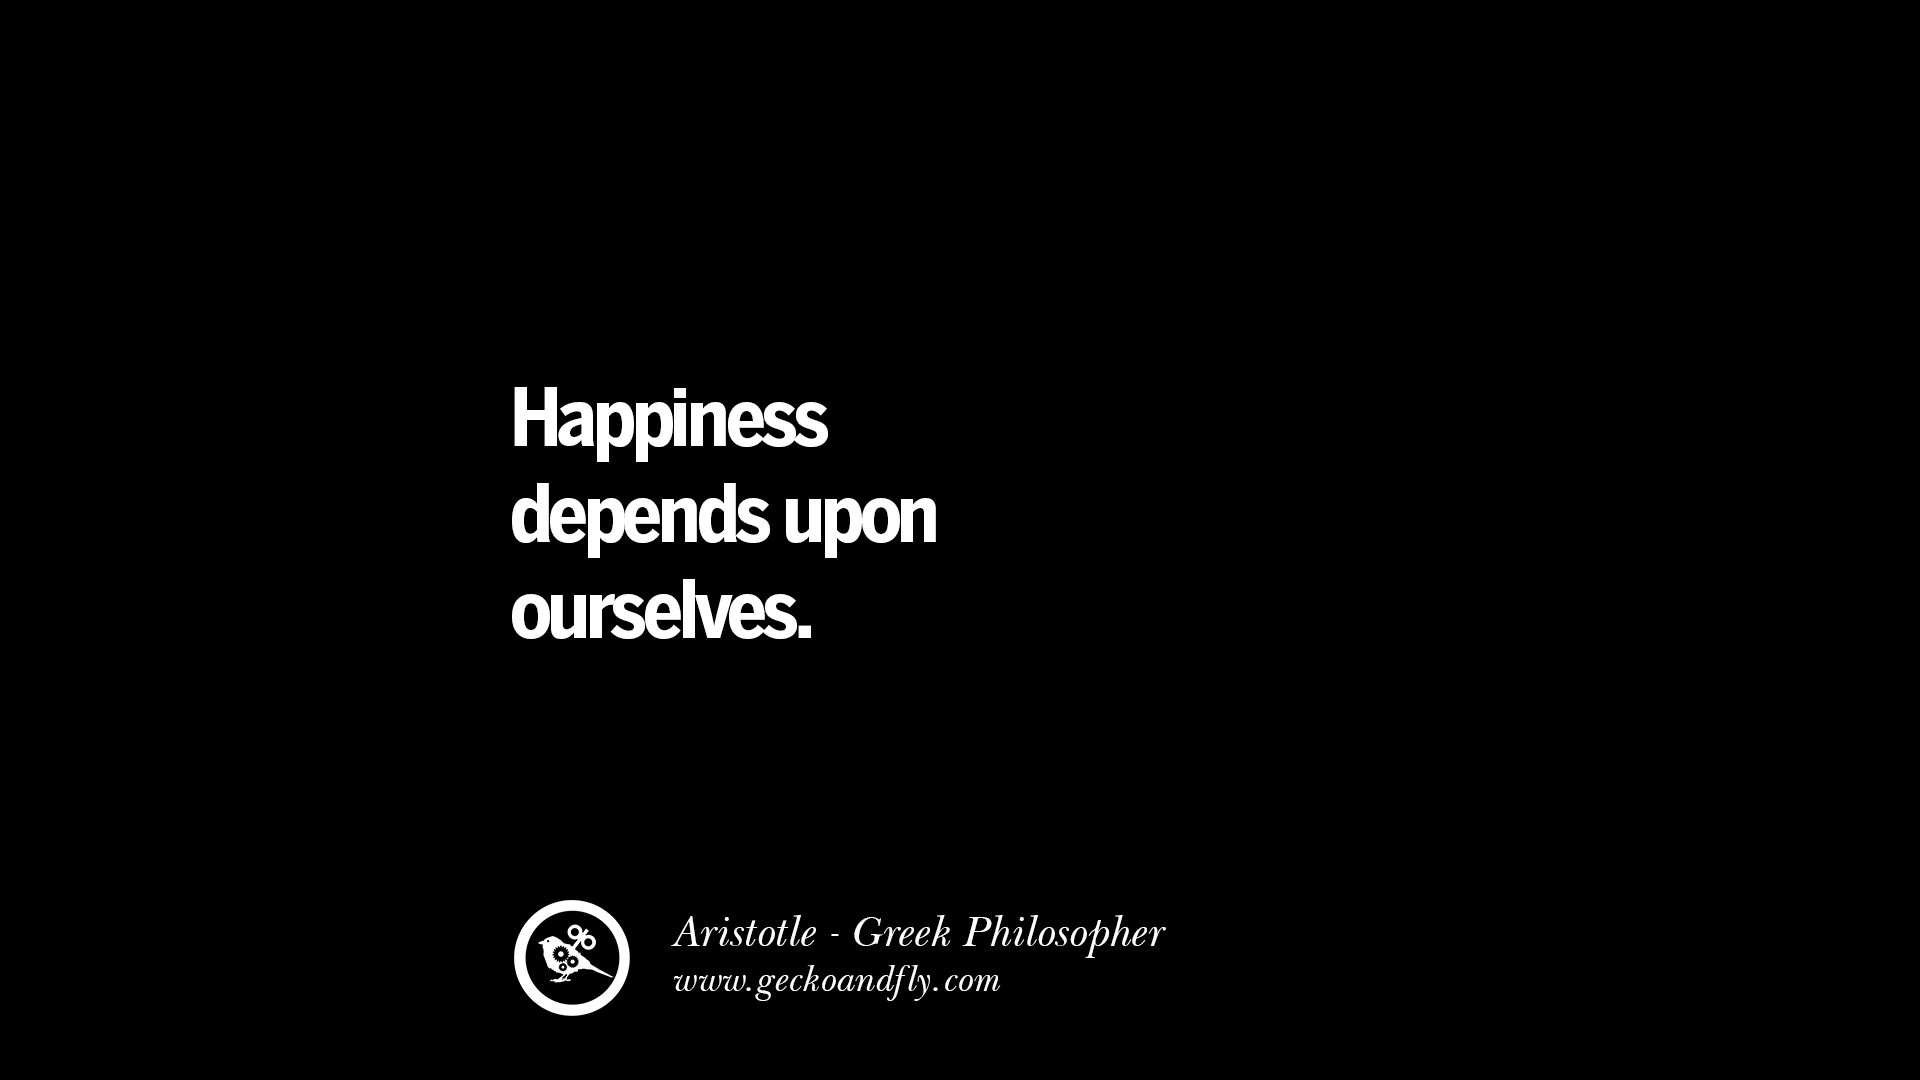 Happiness Depends On Ourselves Aristotle Quote: 40 Famous Aristotle Quotes On Ethics, Love, Life, Politics